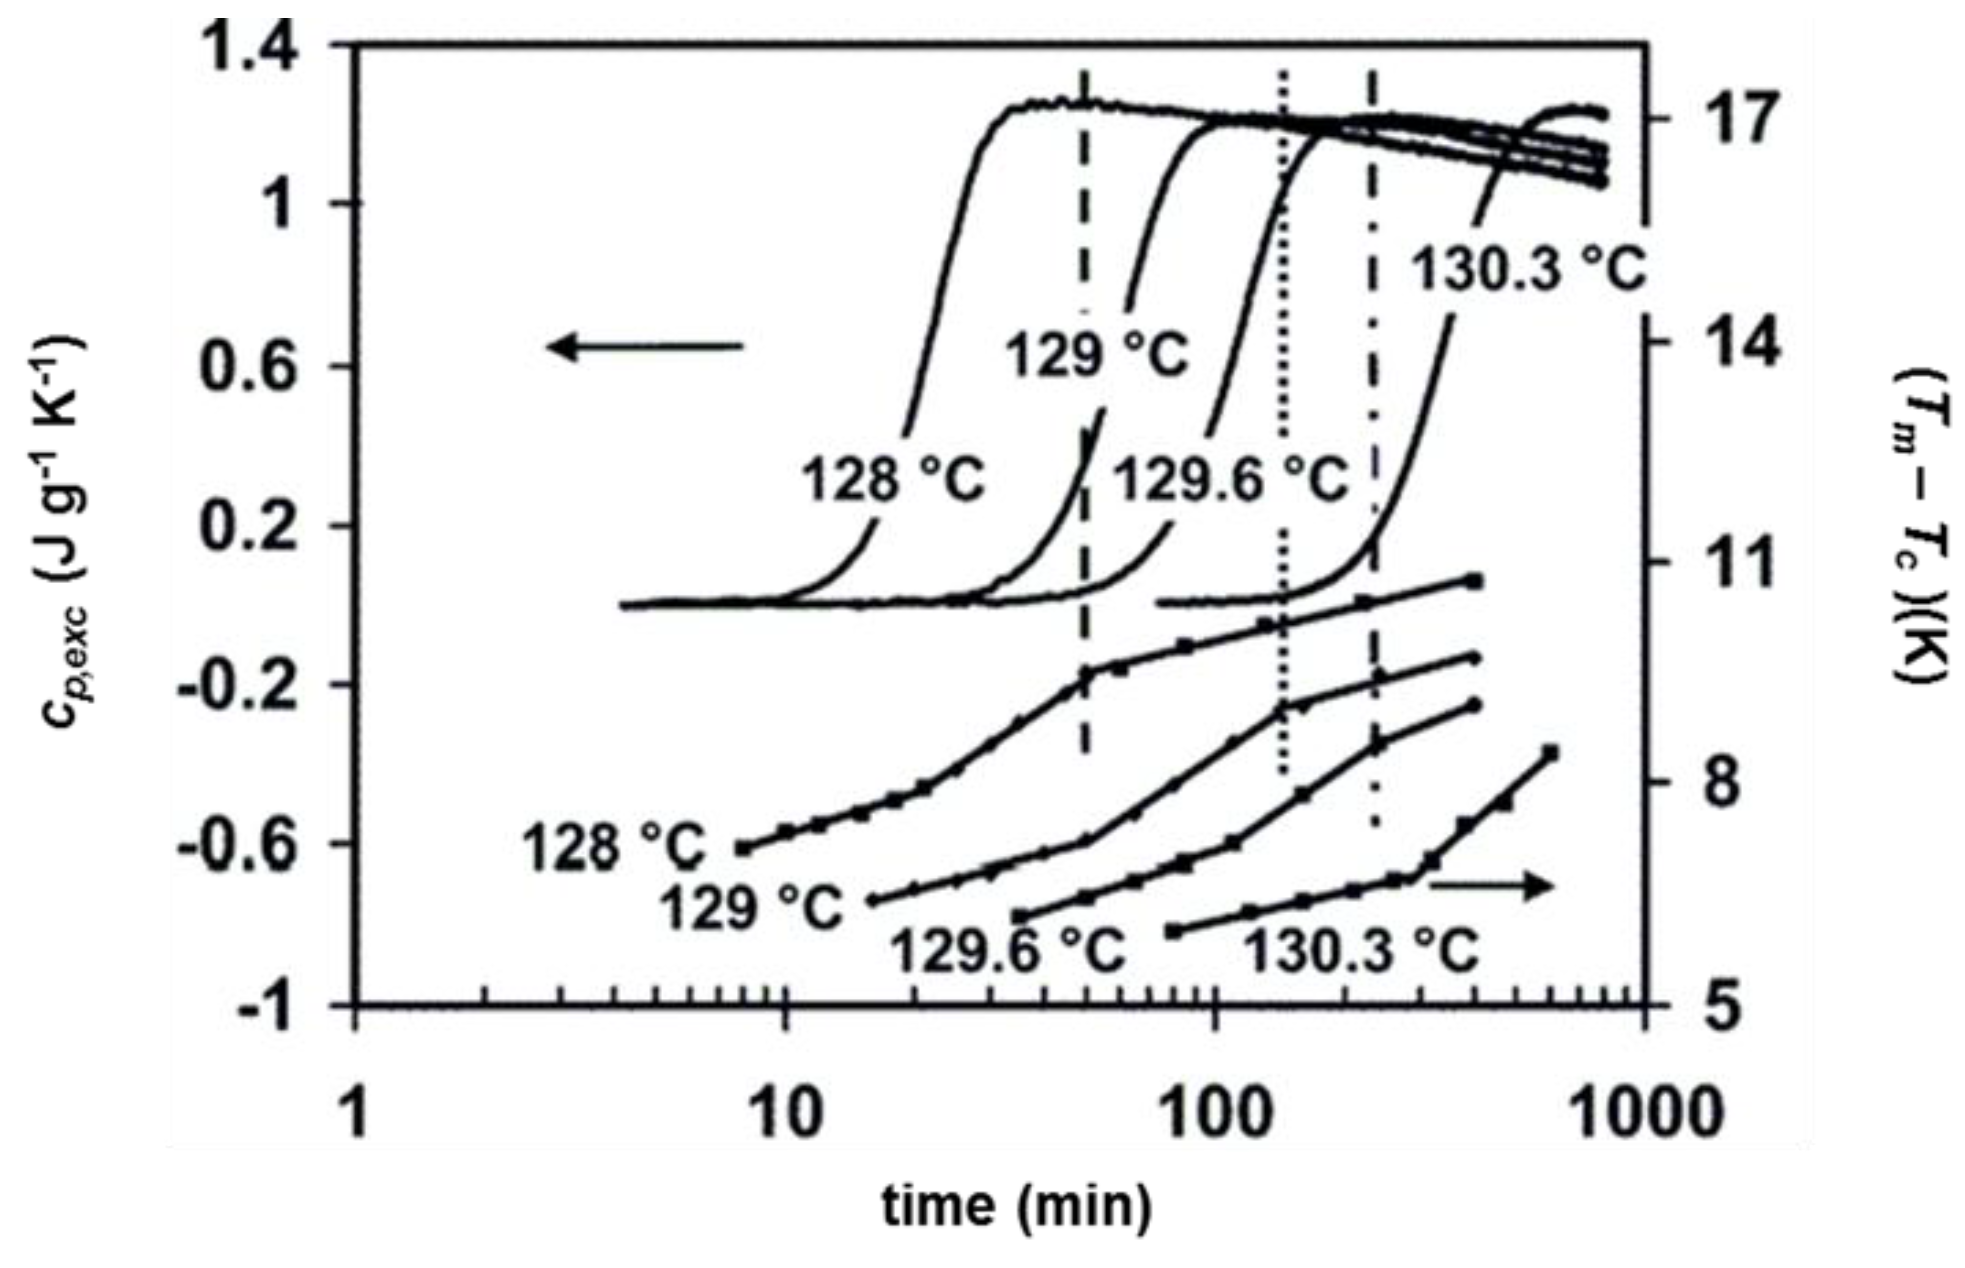 mip experiment on the melting temperature of different polymers essay 1 introduction the substances known as rubber|natural rubber, gutta-percha, and various synthetic compounds|are amorphous solids composed of long polymers1 they vary somewhat in chemical composition, melting point, and.